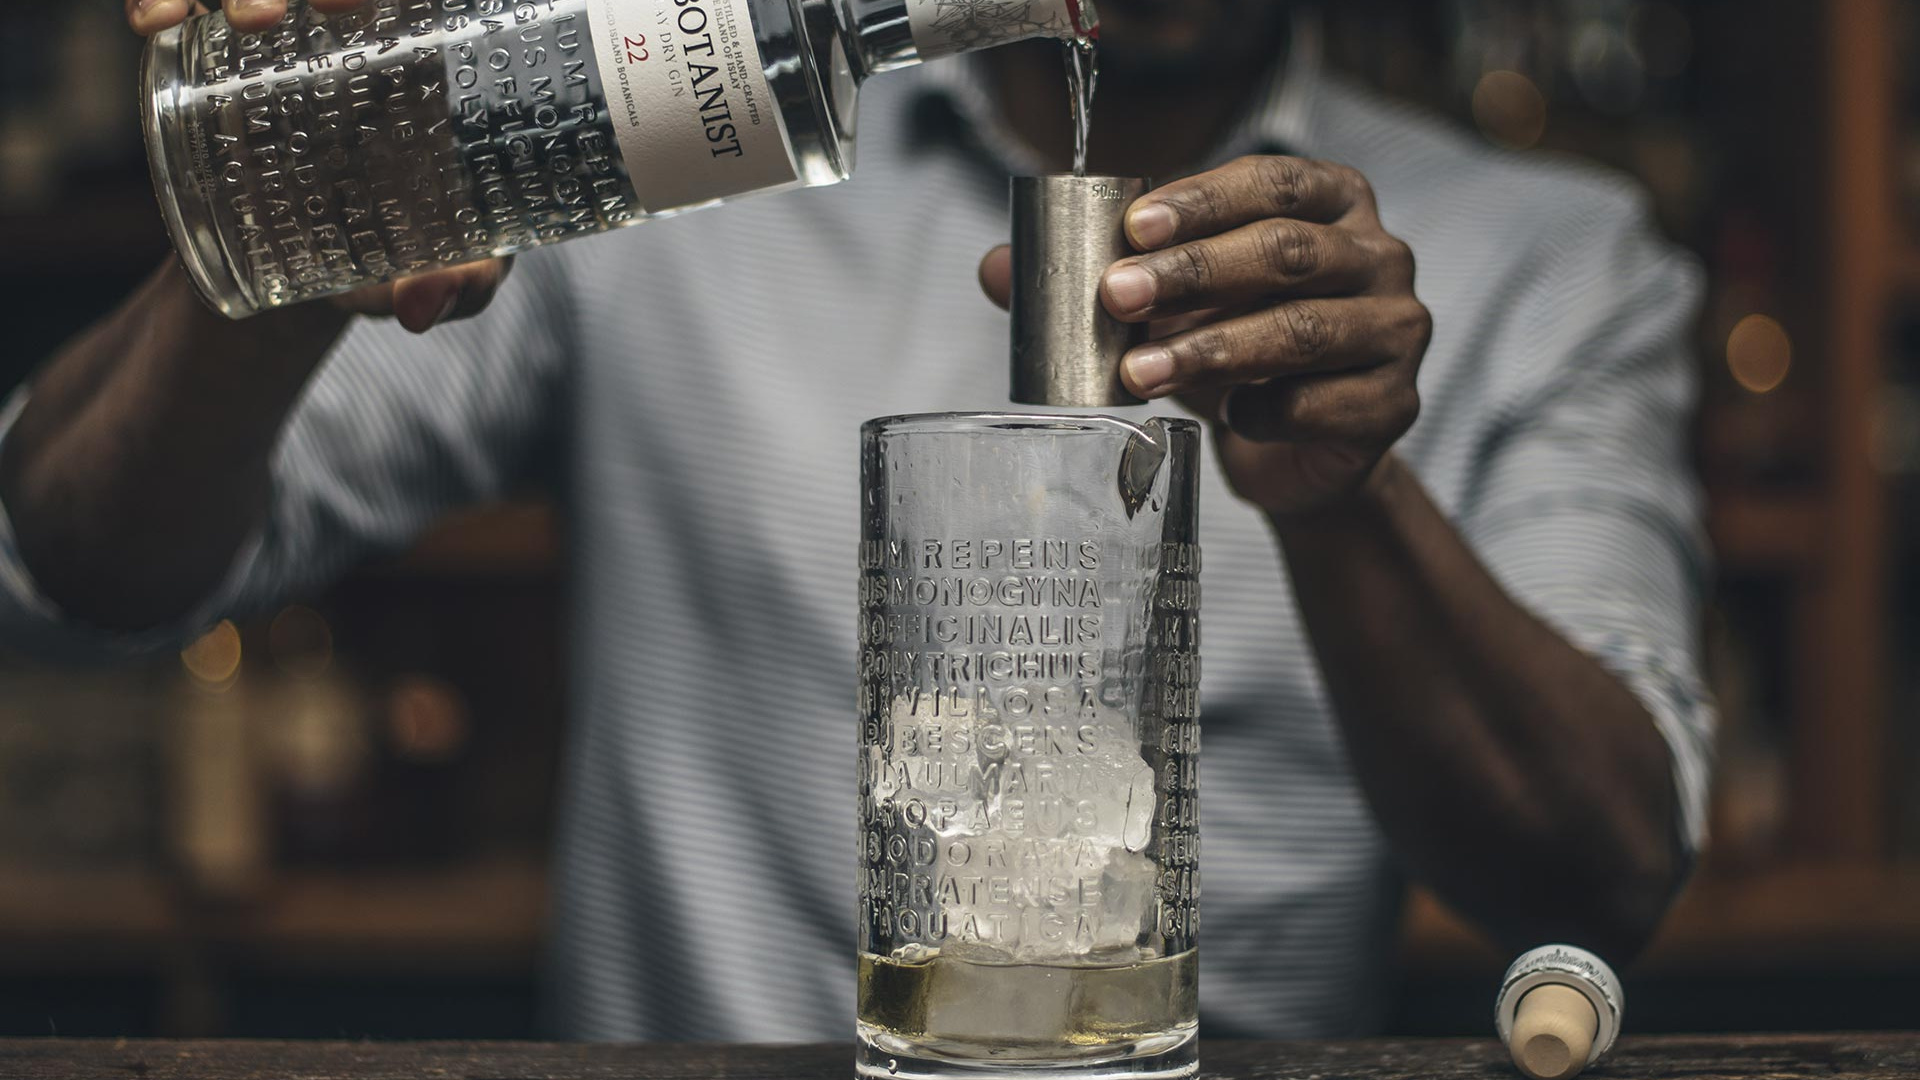 Get a taste of the Hebrides with The Botanist Gin